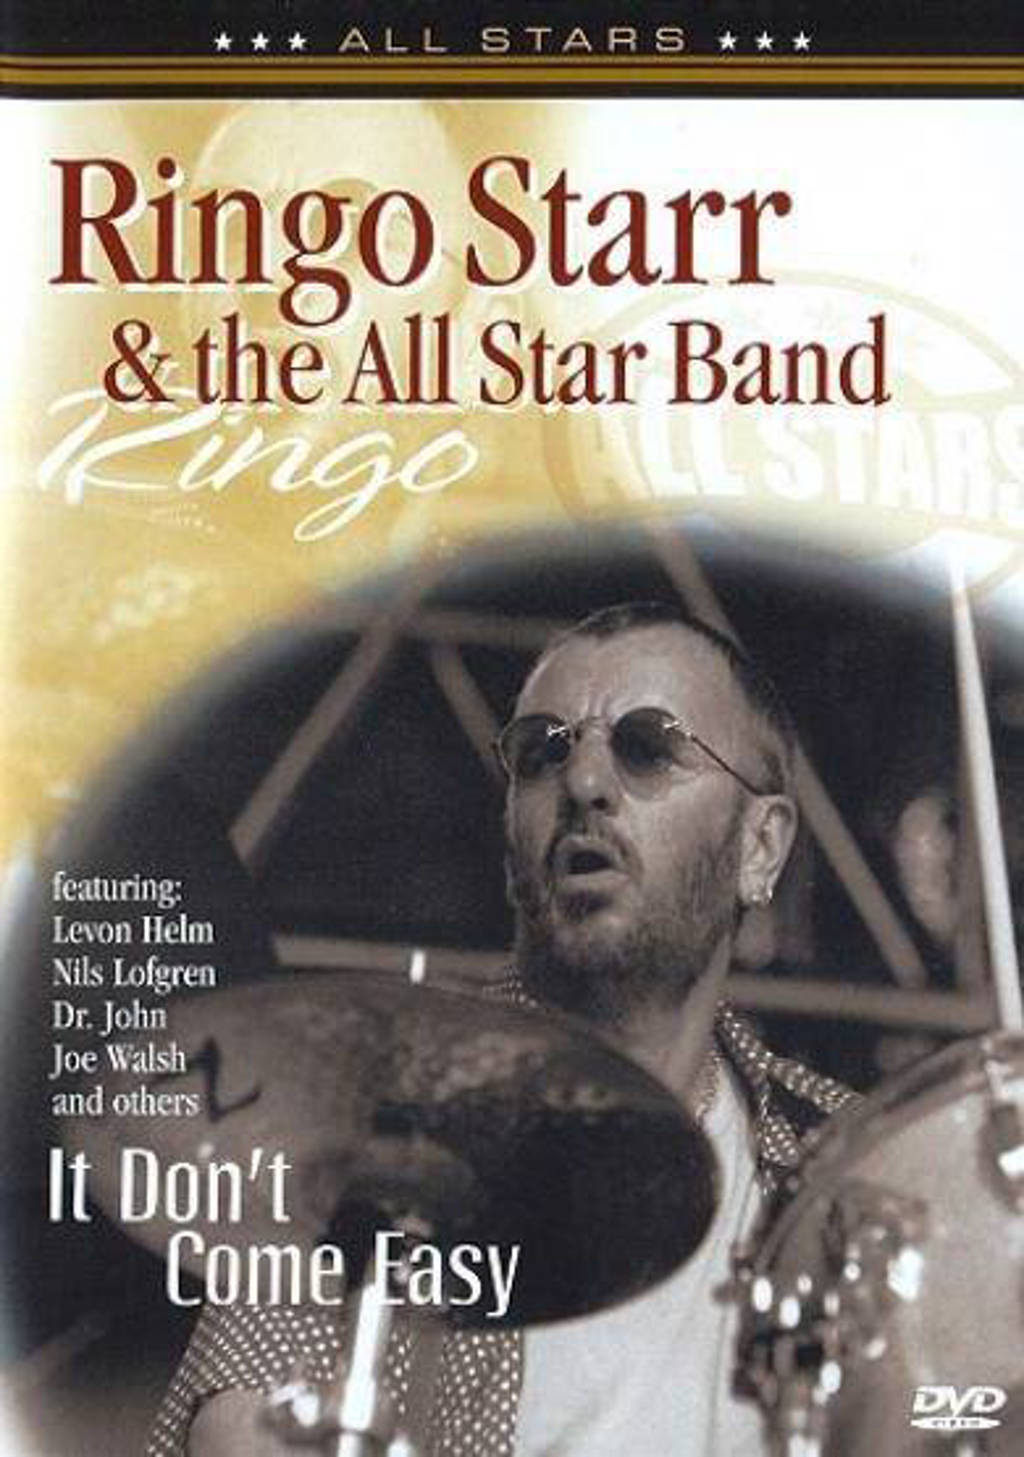 Ringo starr & the all star band - it don't come easy (DVD)